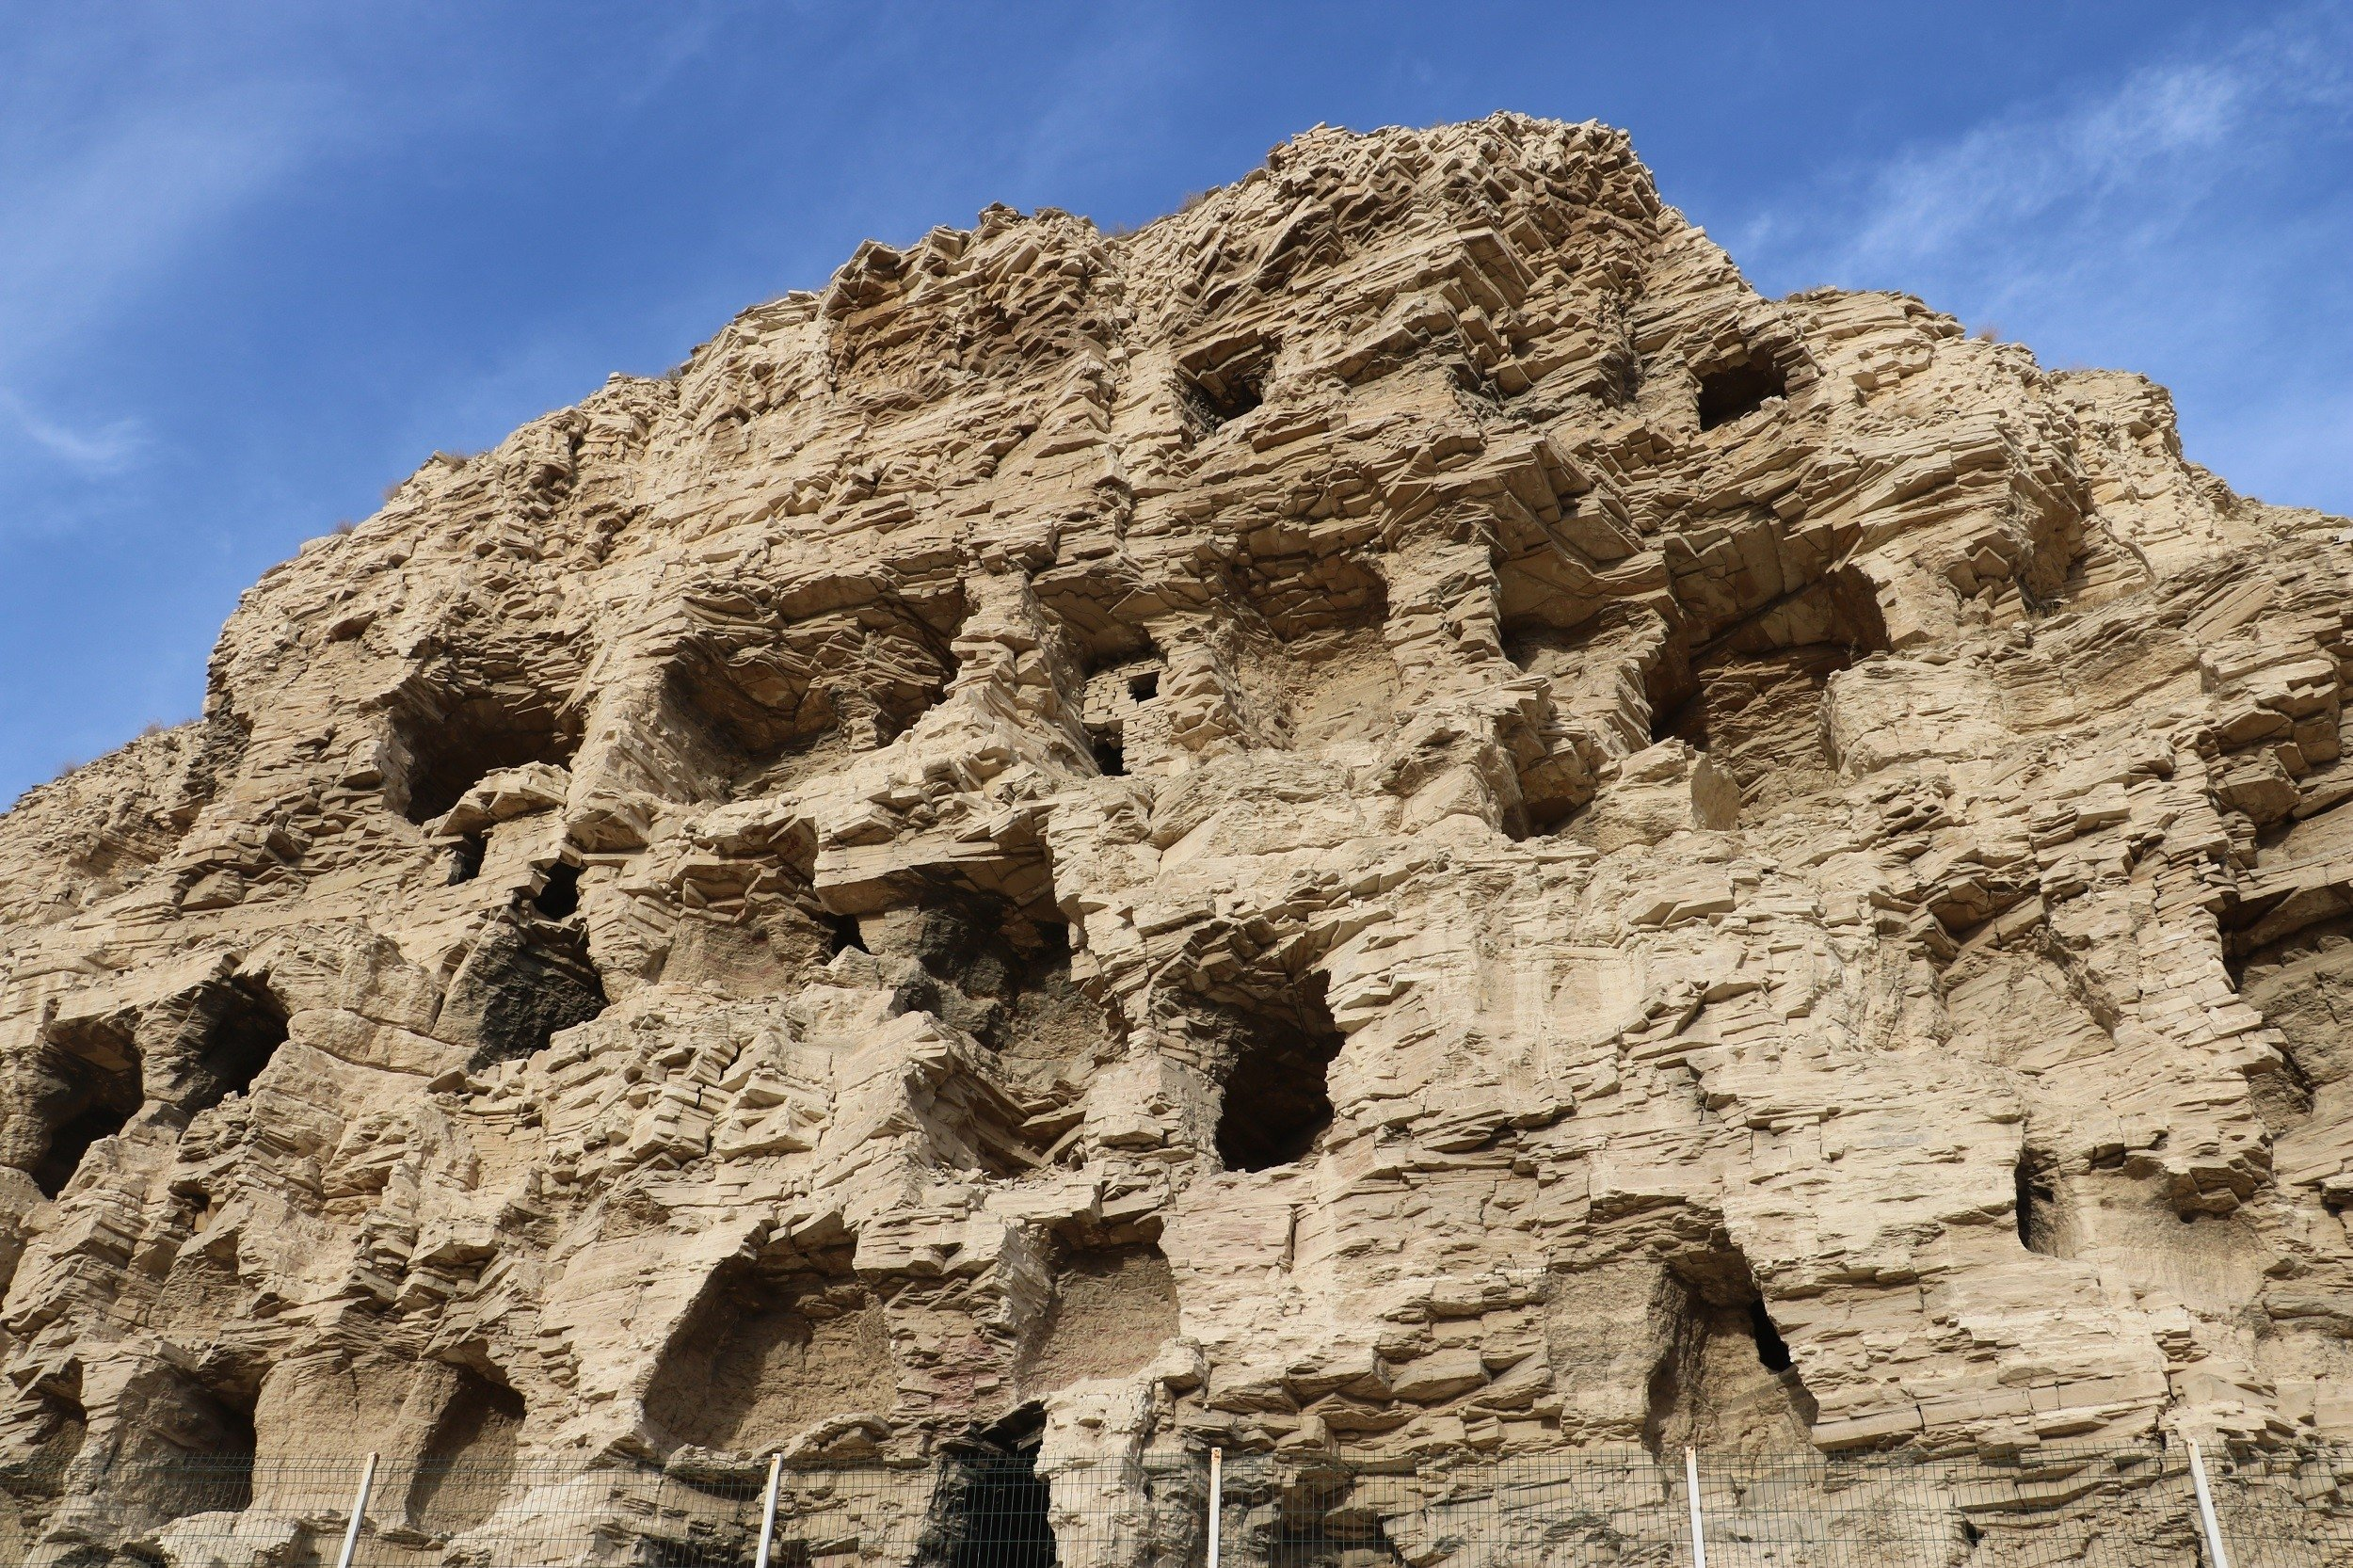 Local officials hope researchers will take an interest in the caves so that more can be discovered about their age and earliest residents, Gürün district of Sivas province, central Turkey, Dec. 7, 2020. (IHA Photo)